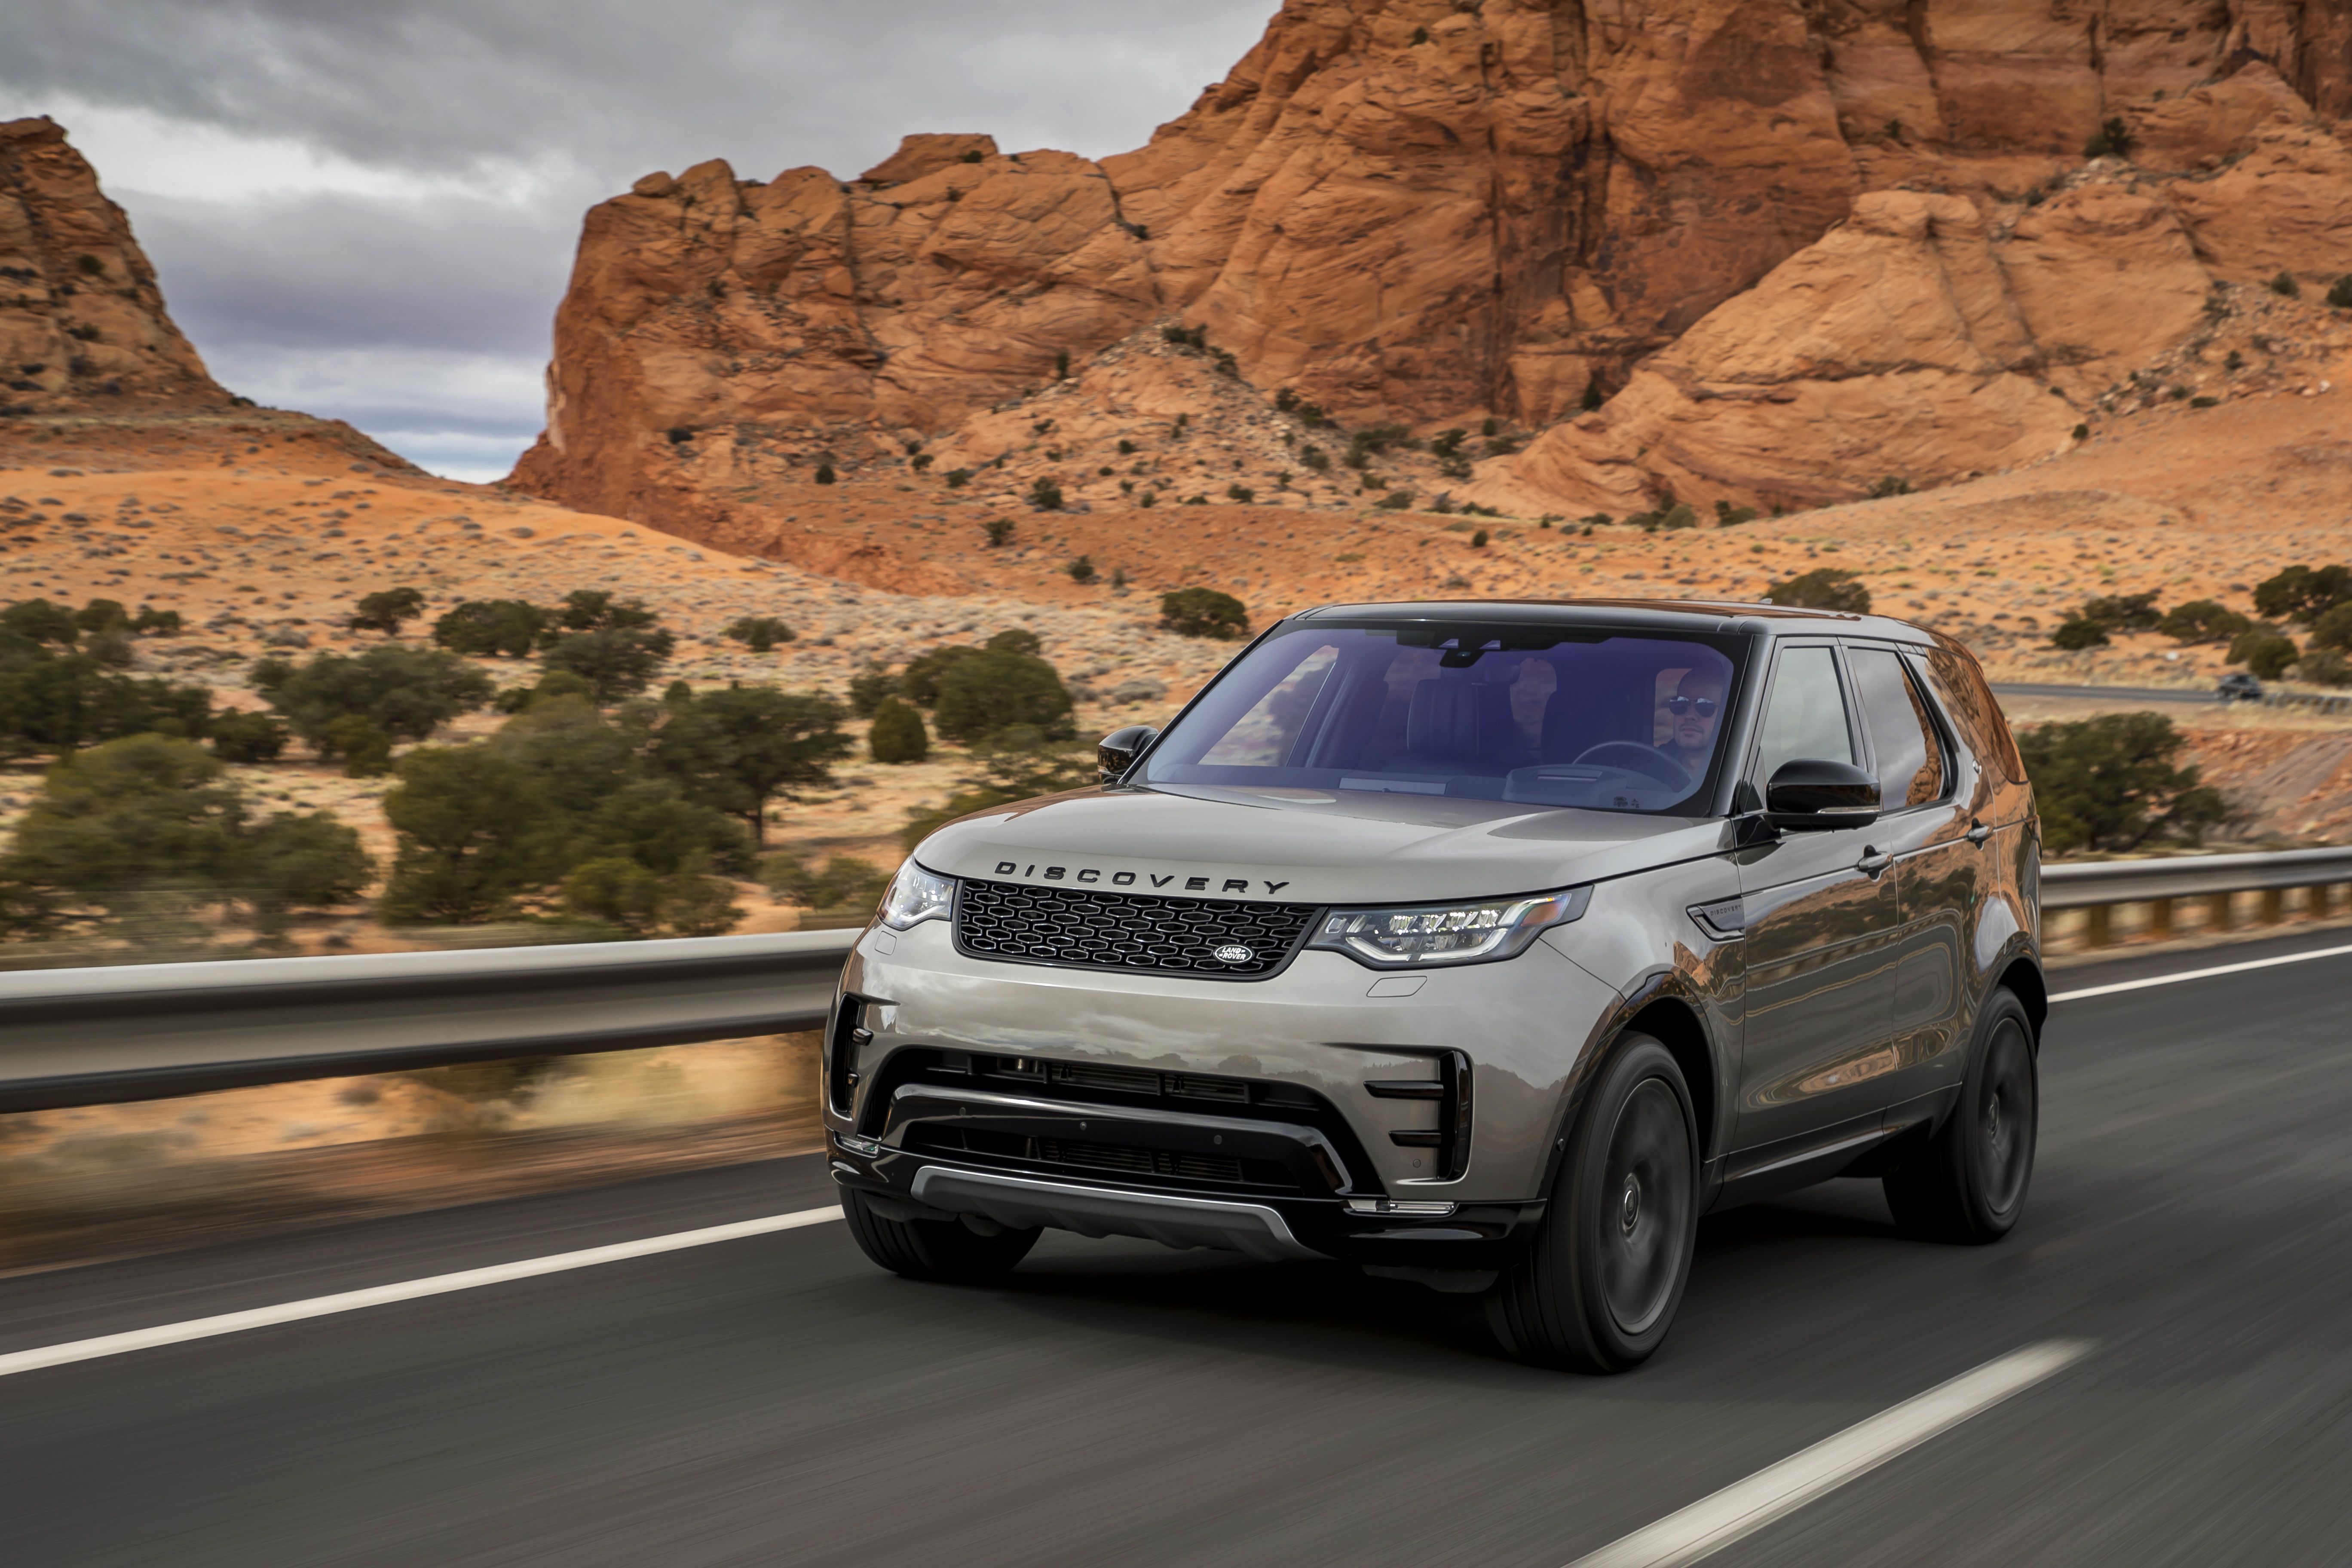 NEW ENGINE AND SAFETY TECH FOR LAND ROVER DISCOVERY | Land